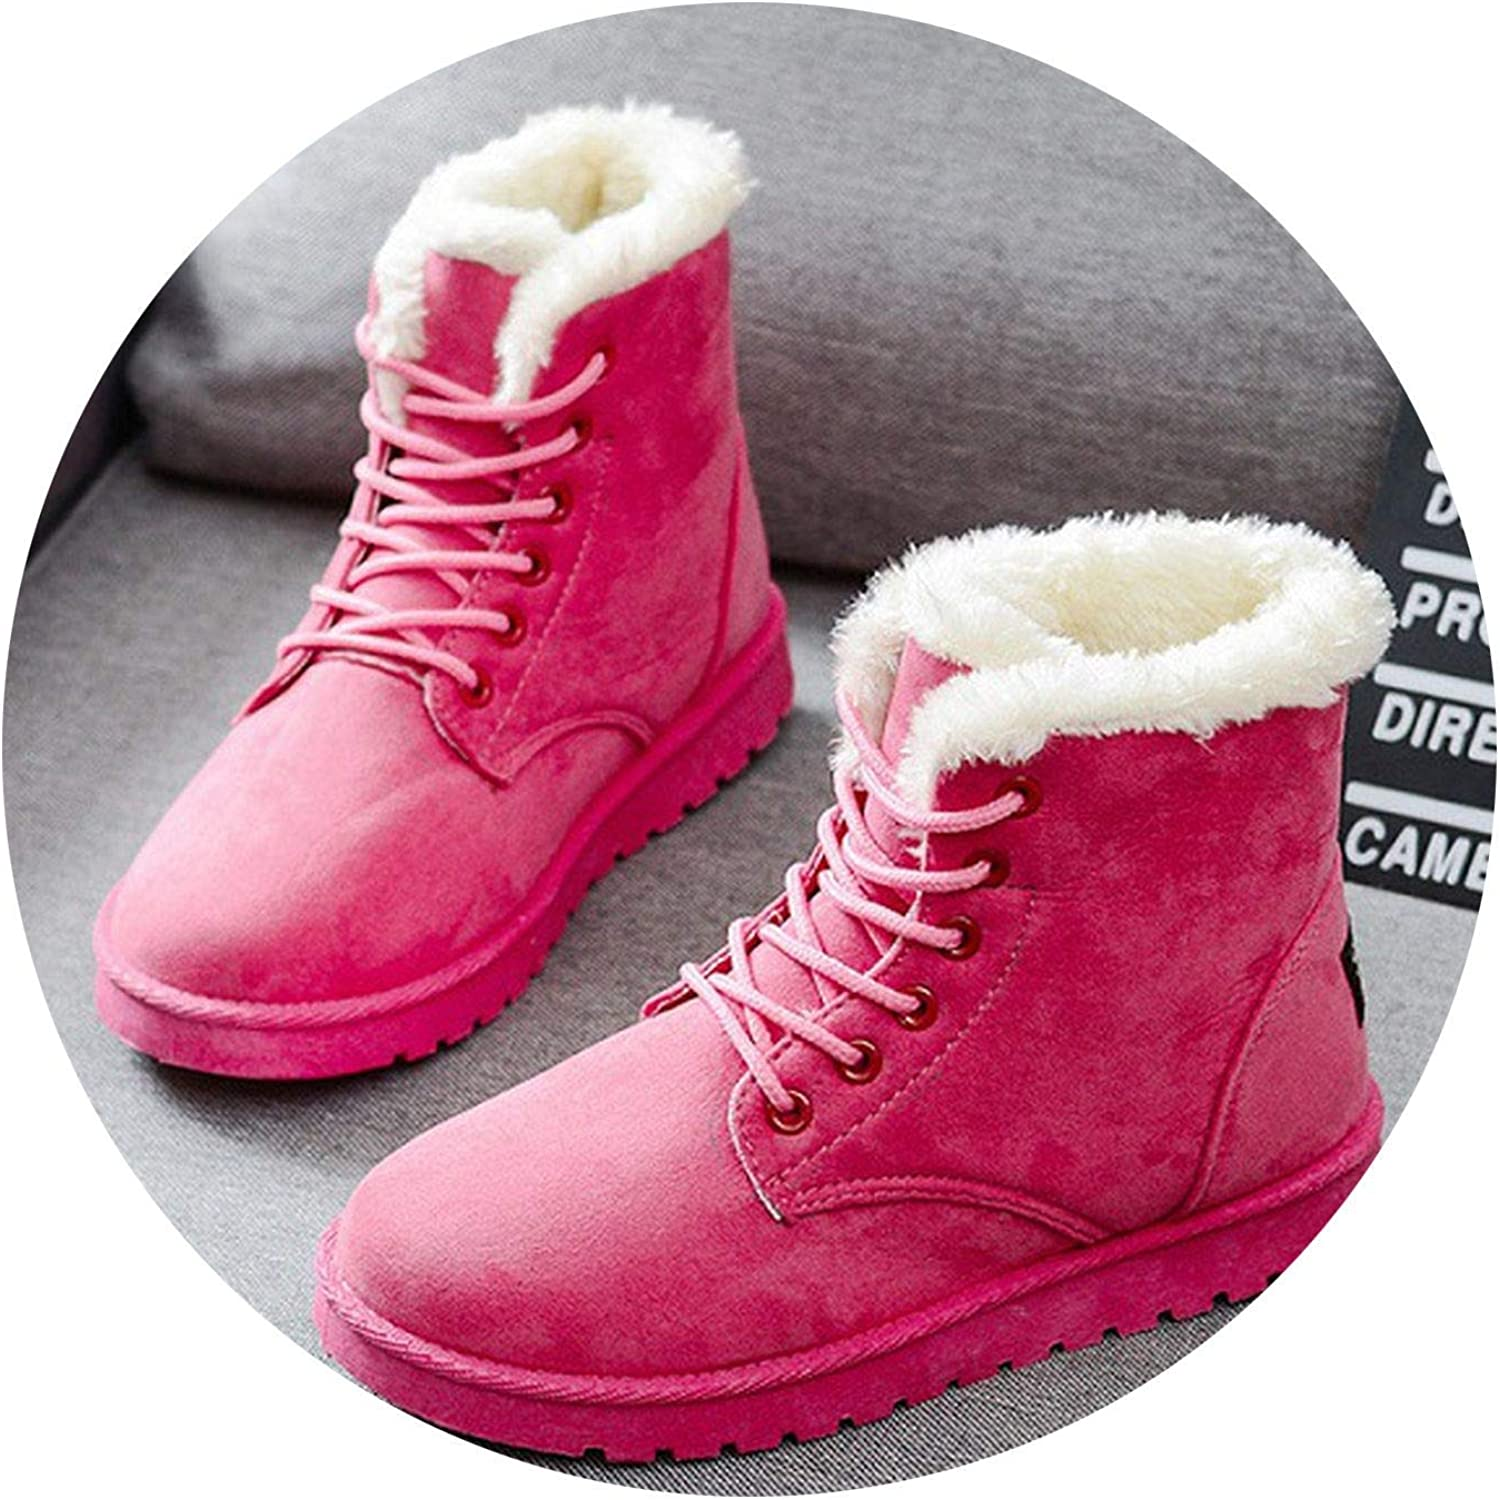 SmarketL Boots Warm Winter Boots shoes Suede Ankle Boots for Plush ole Snow Boots